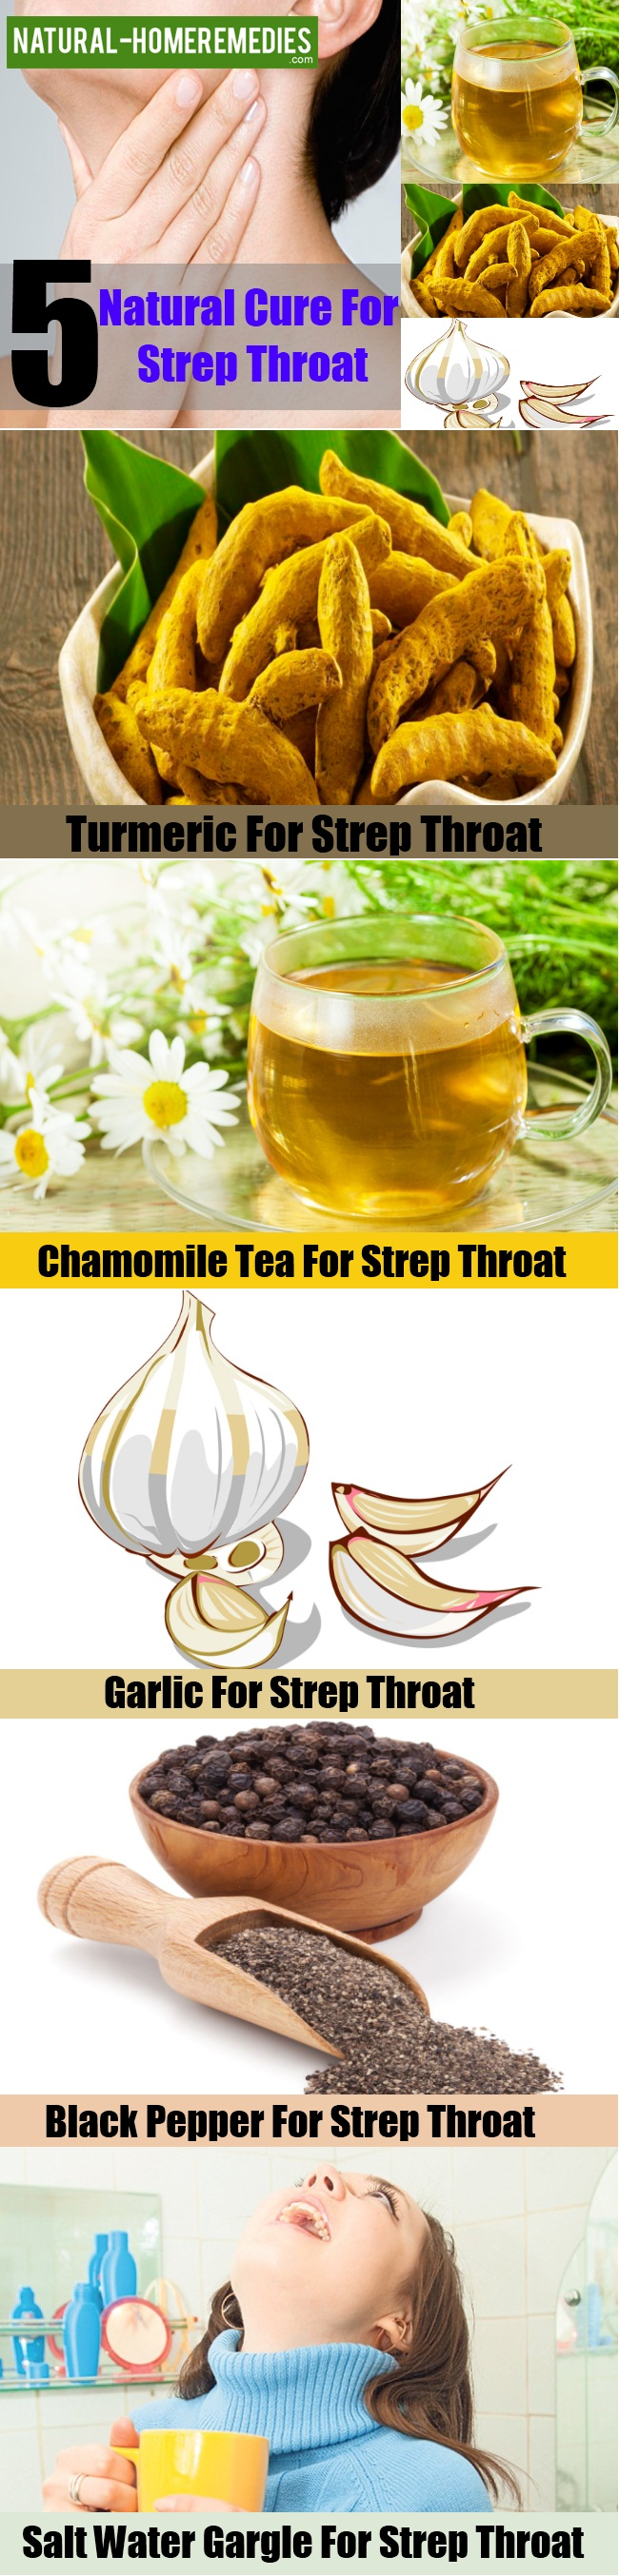 Natural Cure For Strep Throat